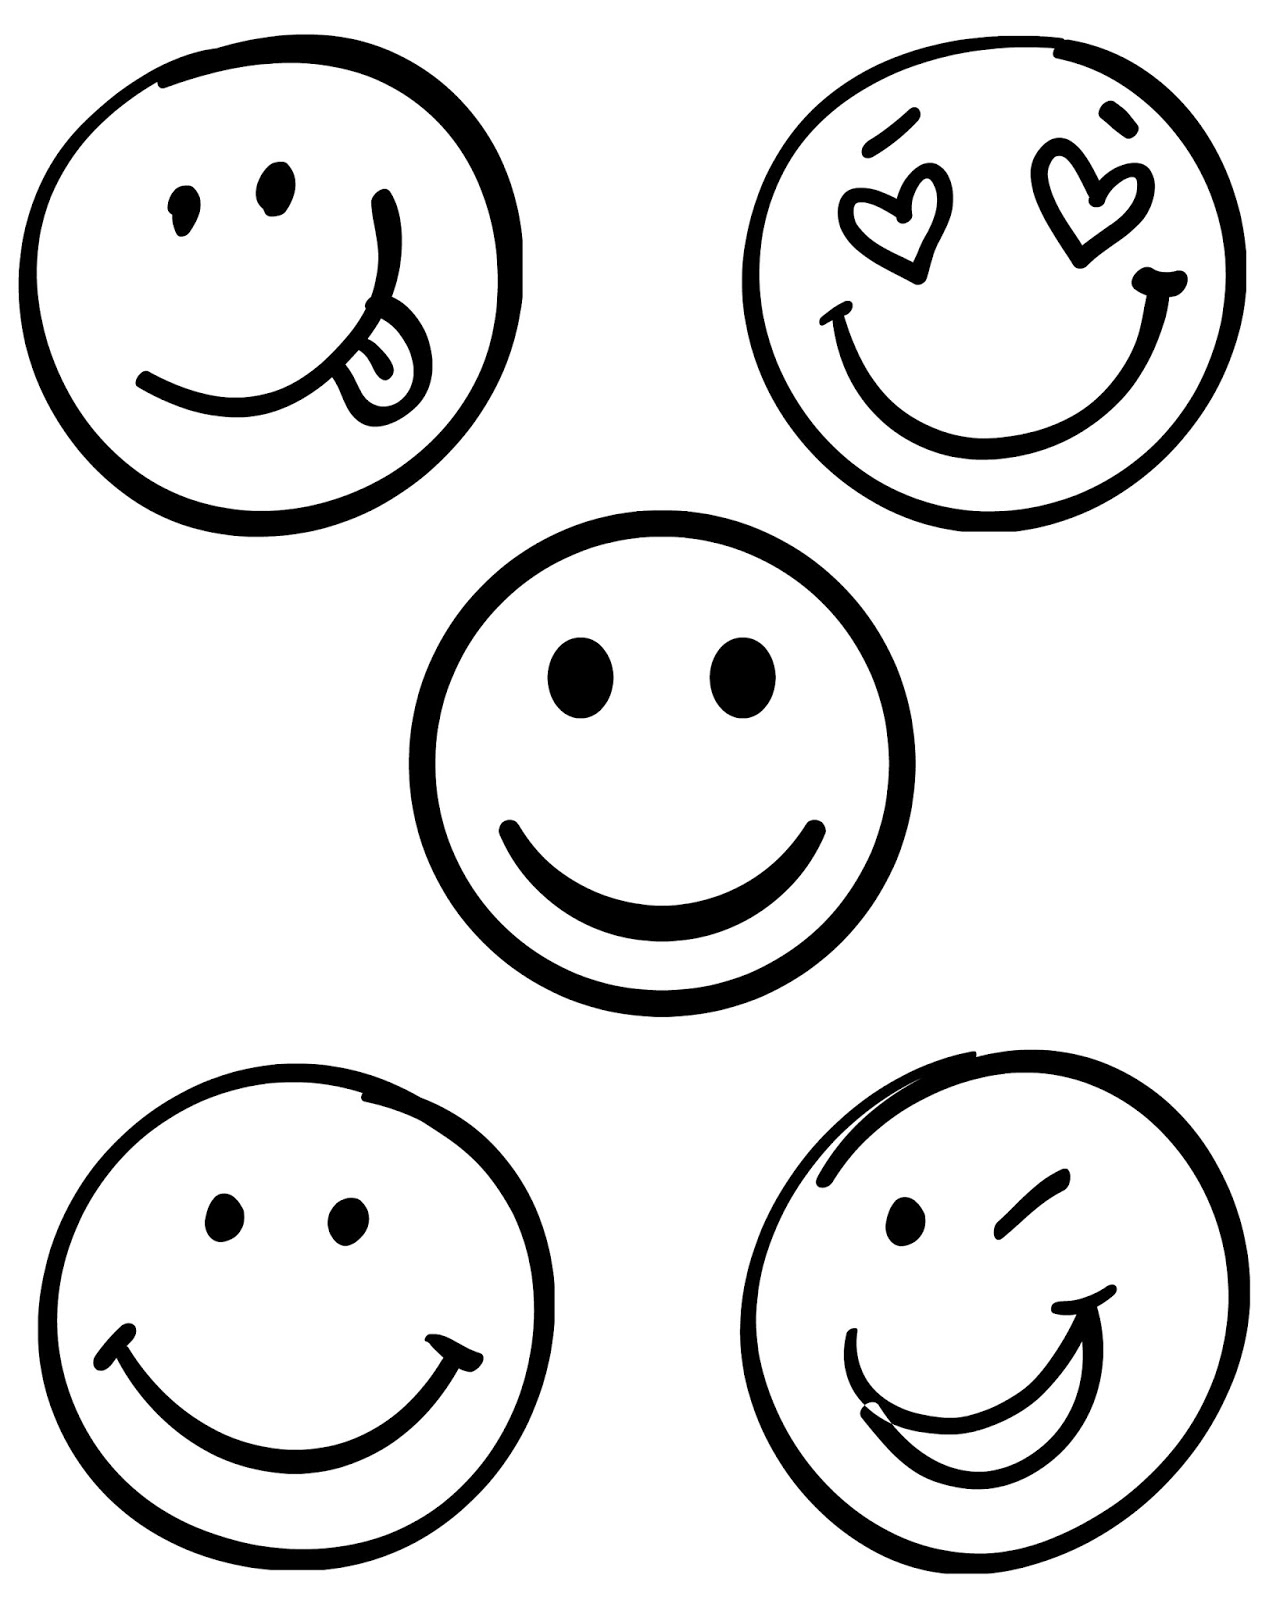 Smiley Face Drawing at GetDrawings.com | Free for personal ...